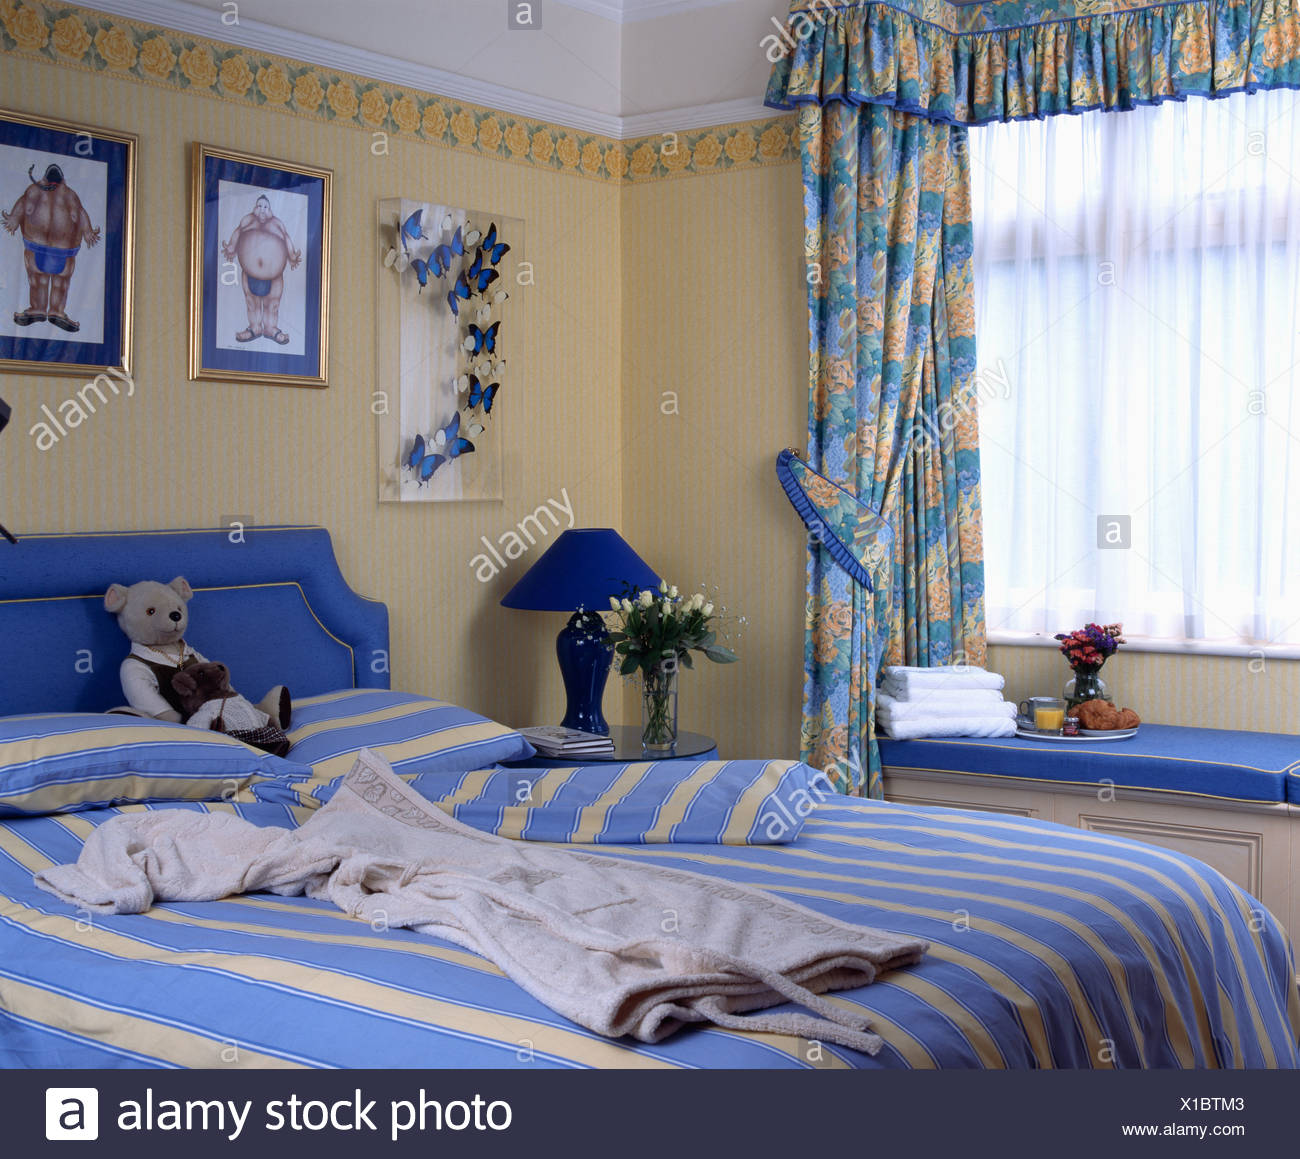 Blue Patterned Curtains And Striped Bed Linen In Yellow Bedroom Stock Photo Alamy